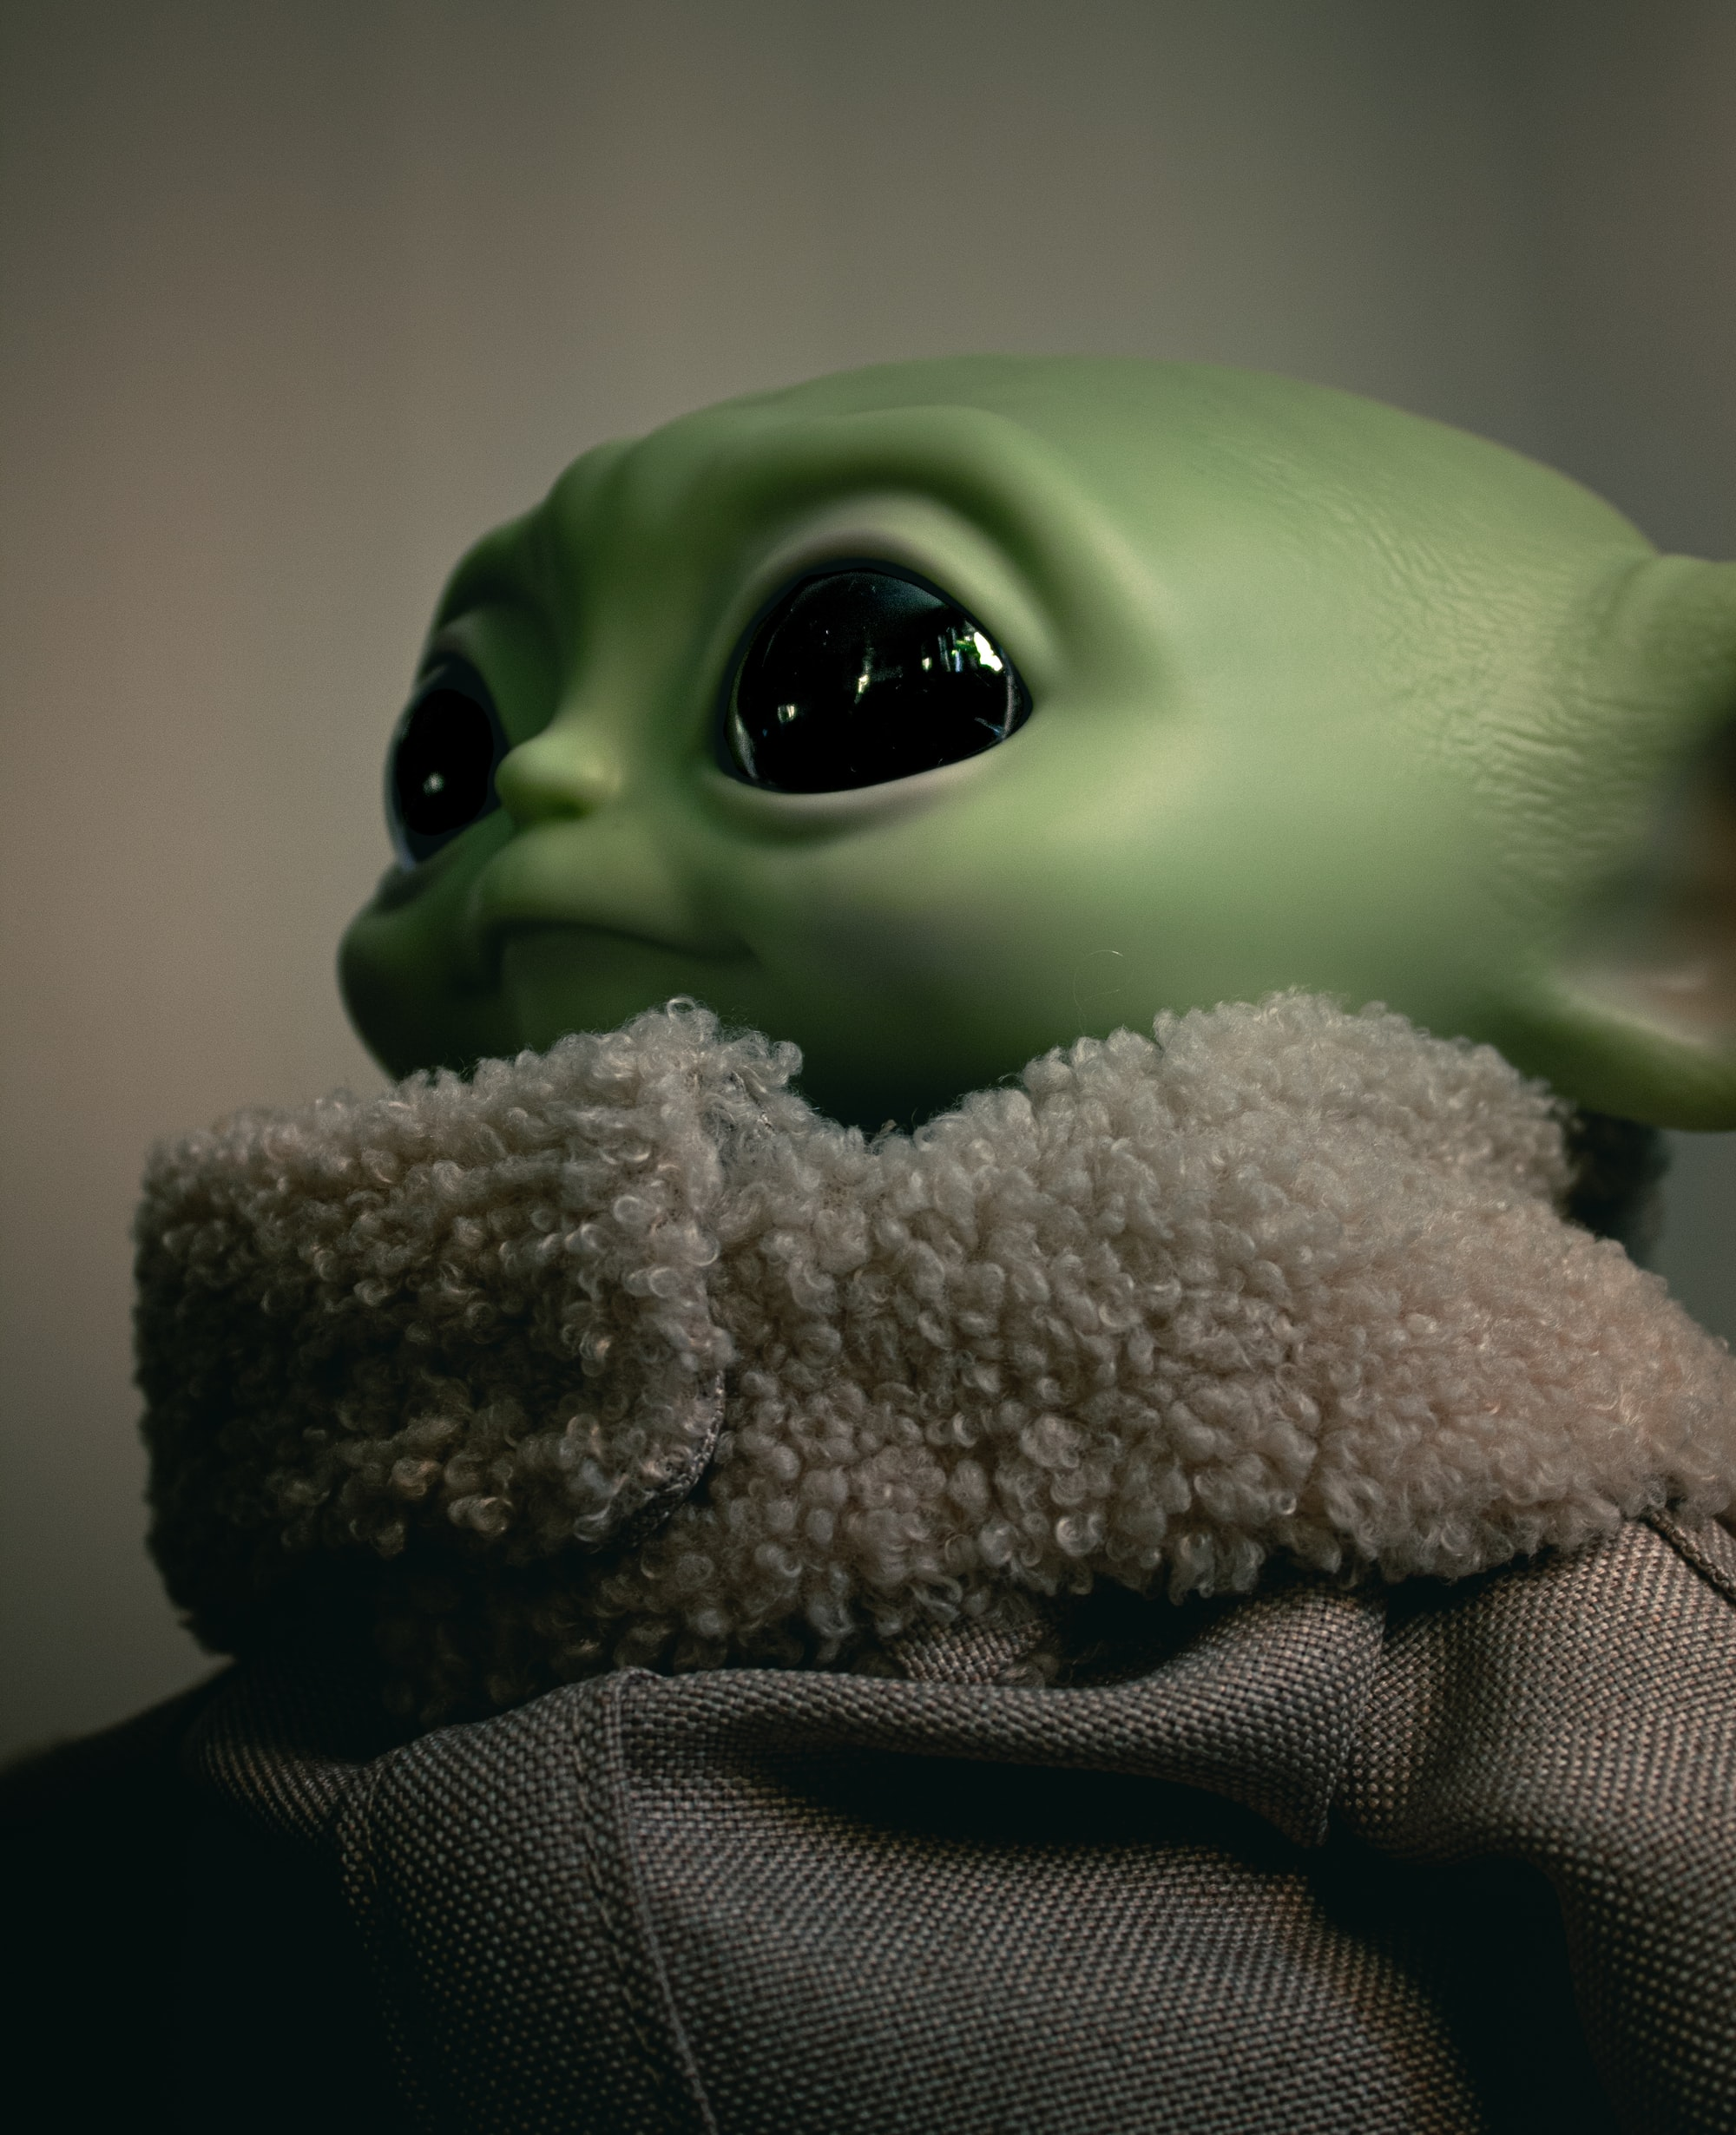 Close-up image of Baby Yoda (Grogu) toy from Star Wars: The Mandalorian.